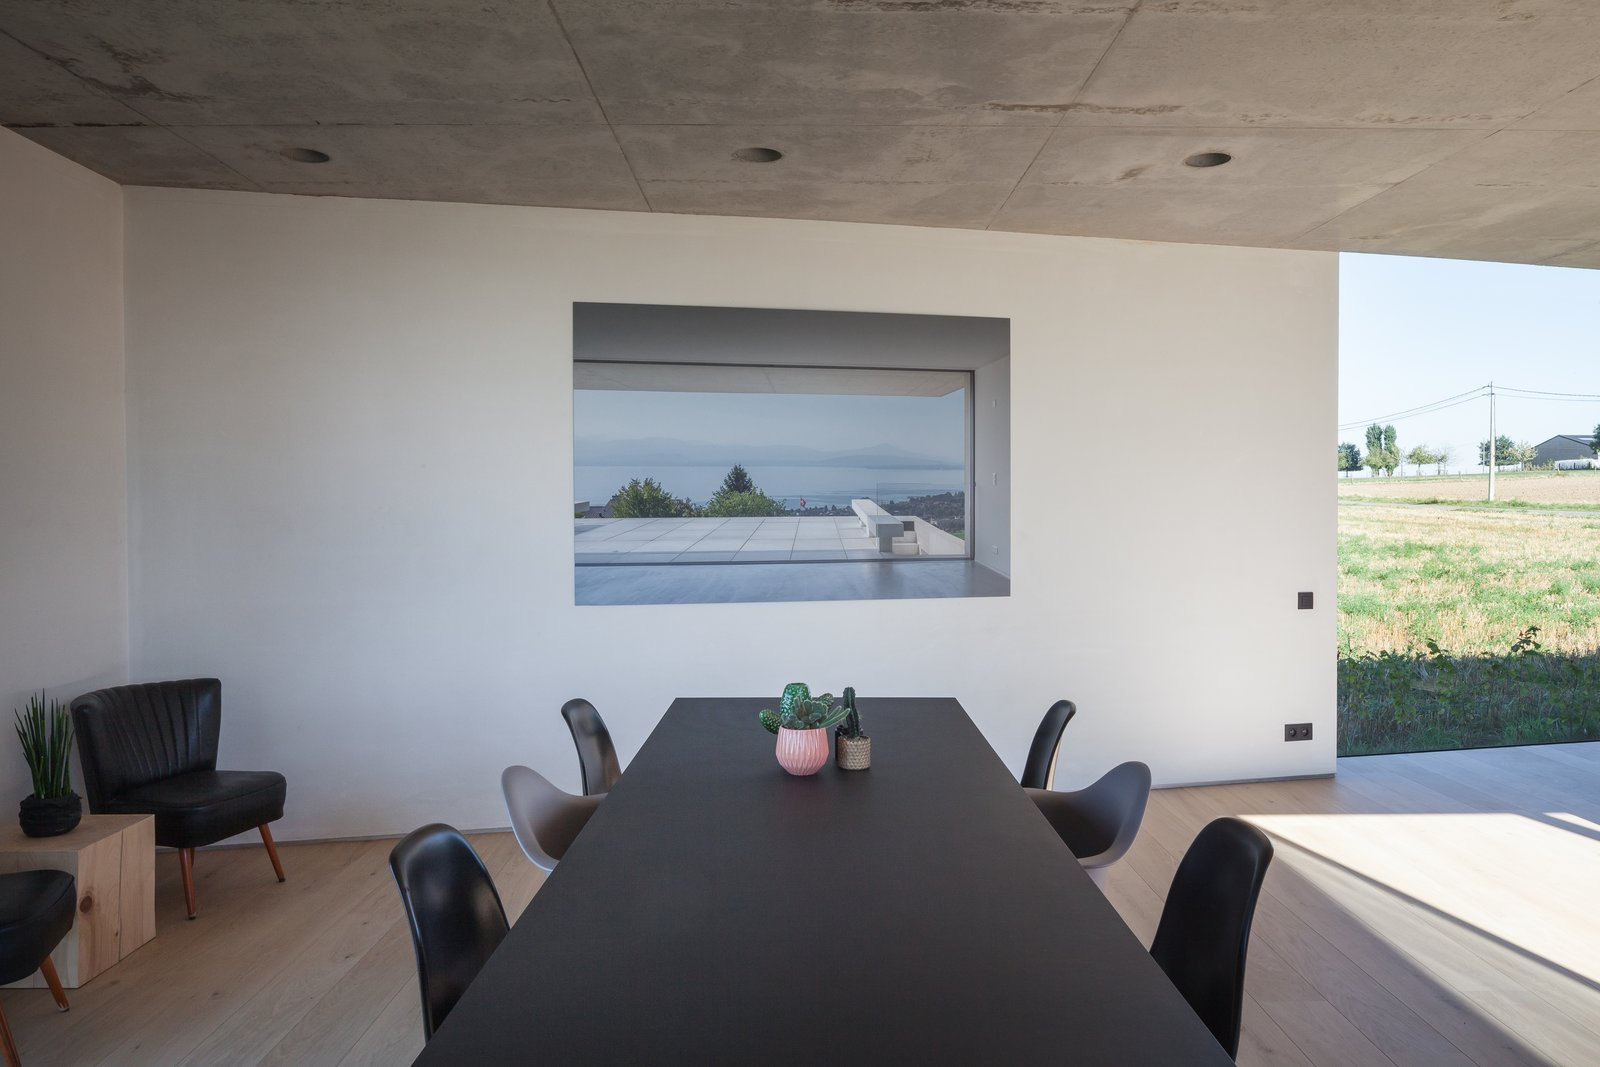 Dining Room, Chair, Recessed Lighting, Light Hardwood Floor, and Table  Photo 10 of 14 in Defying traditionalism: concrete bungalow inserted in a rural Belgian landscape